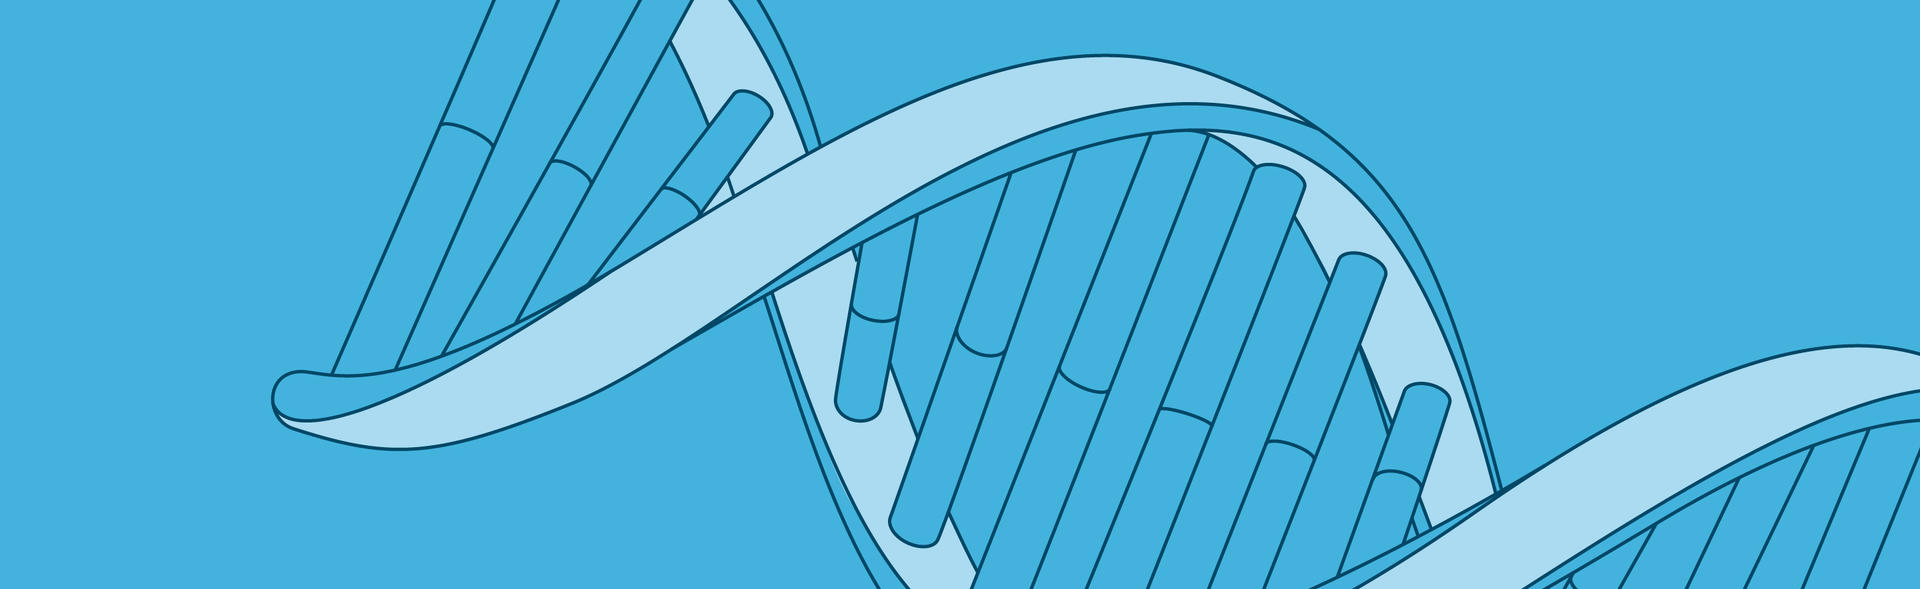 Illustrated close up of DNA.